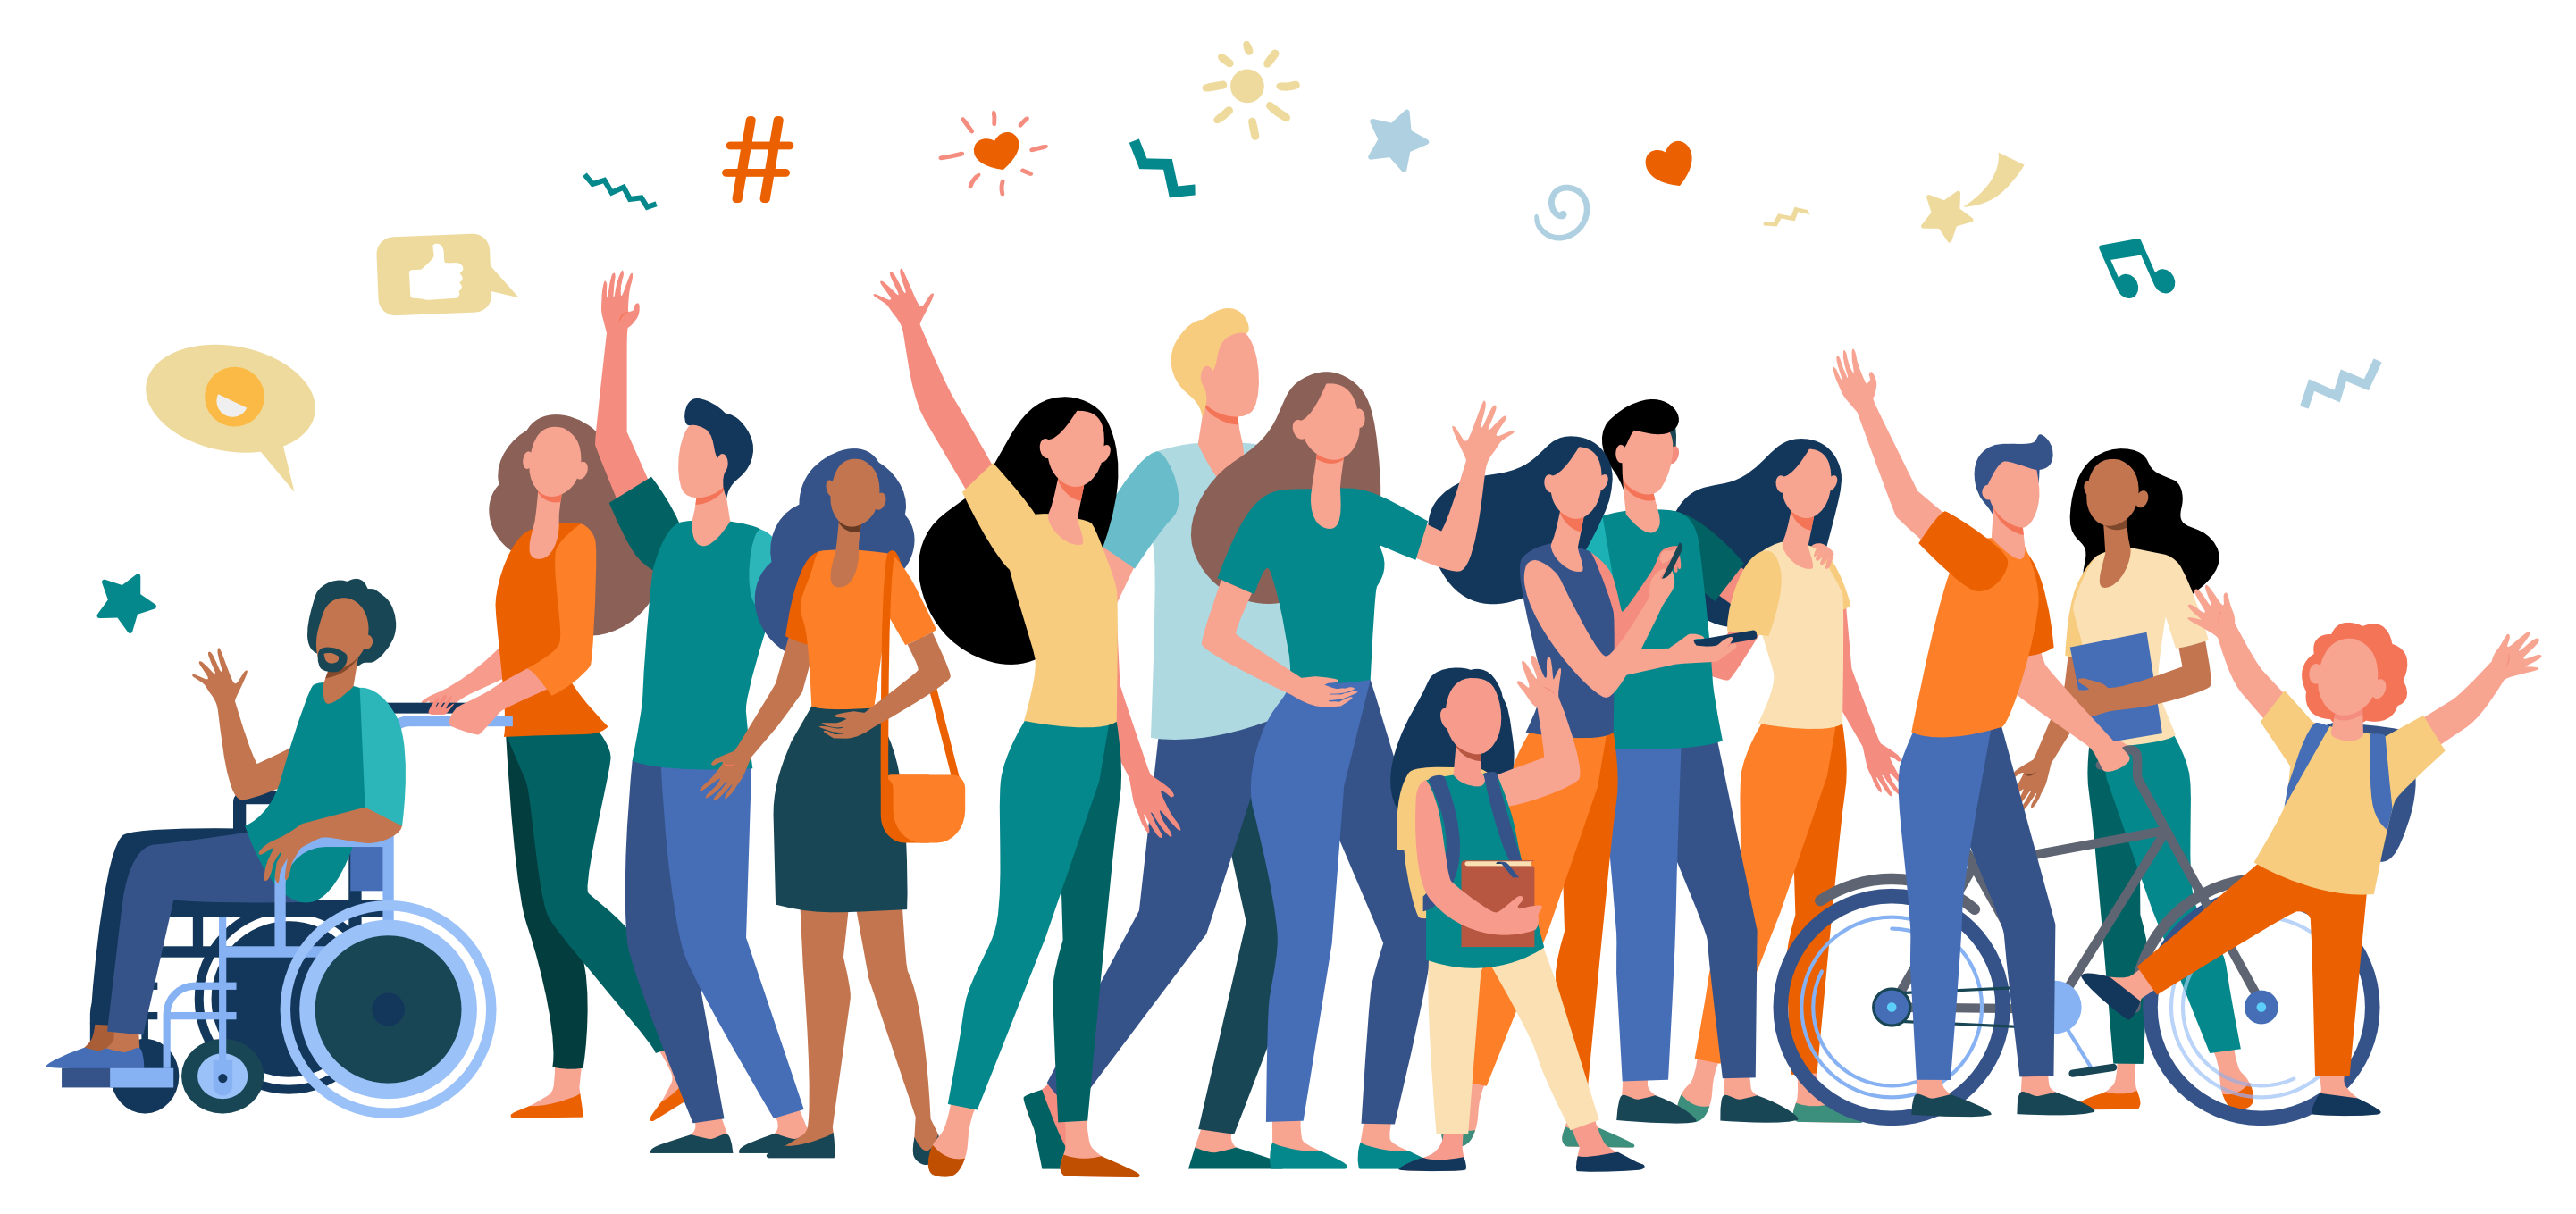 A group of people celebrating their nonprofit website